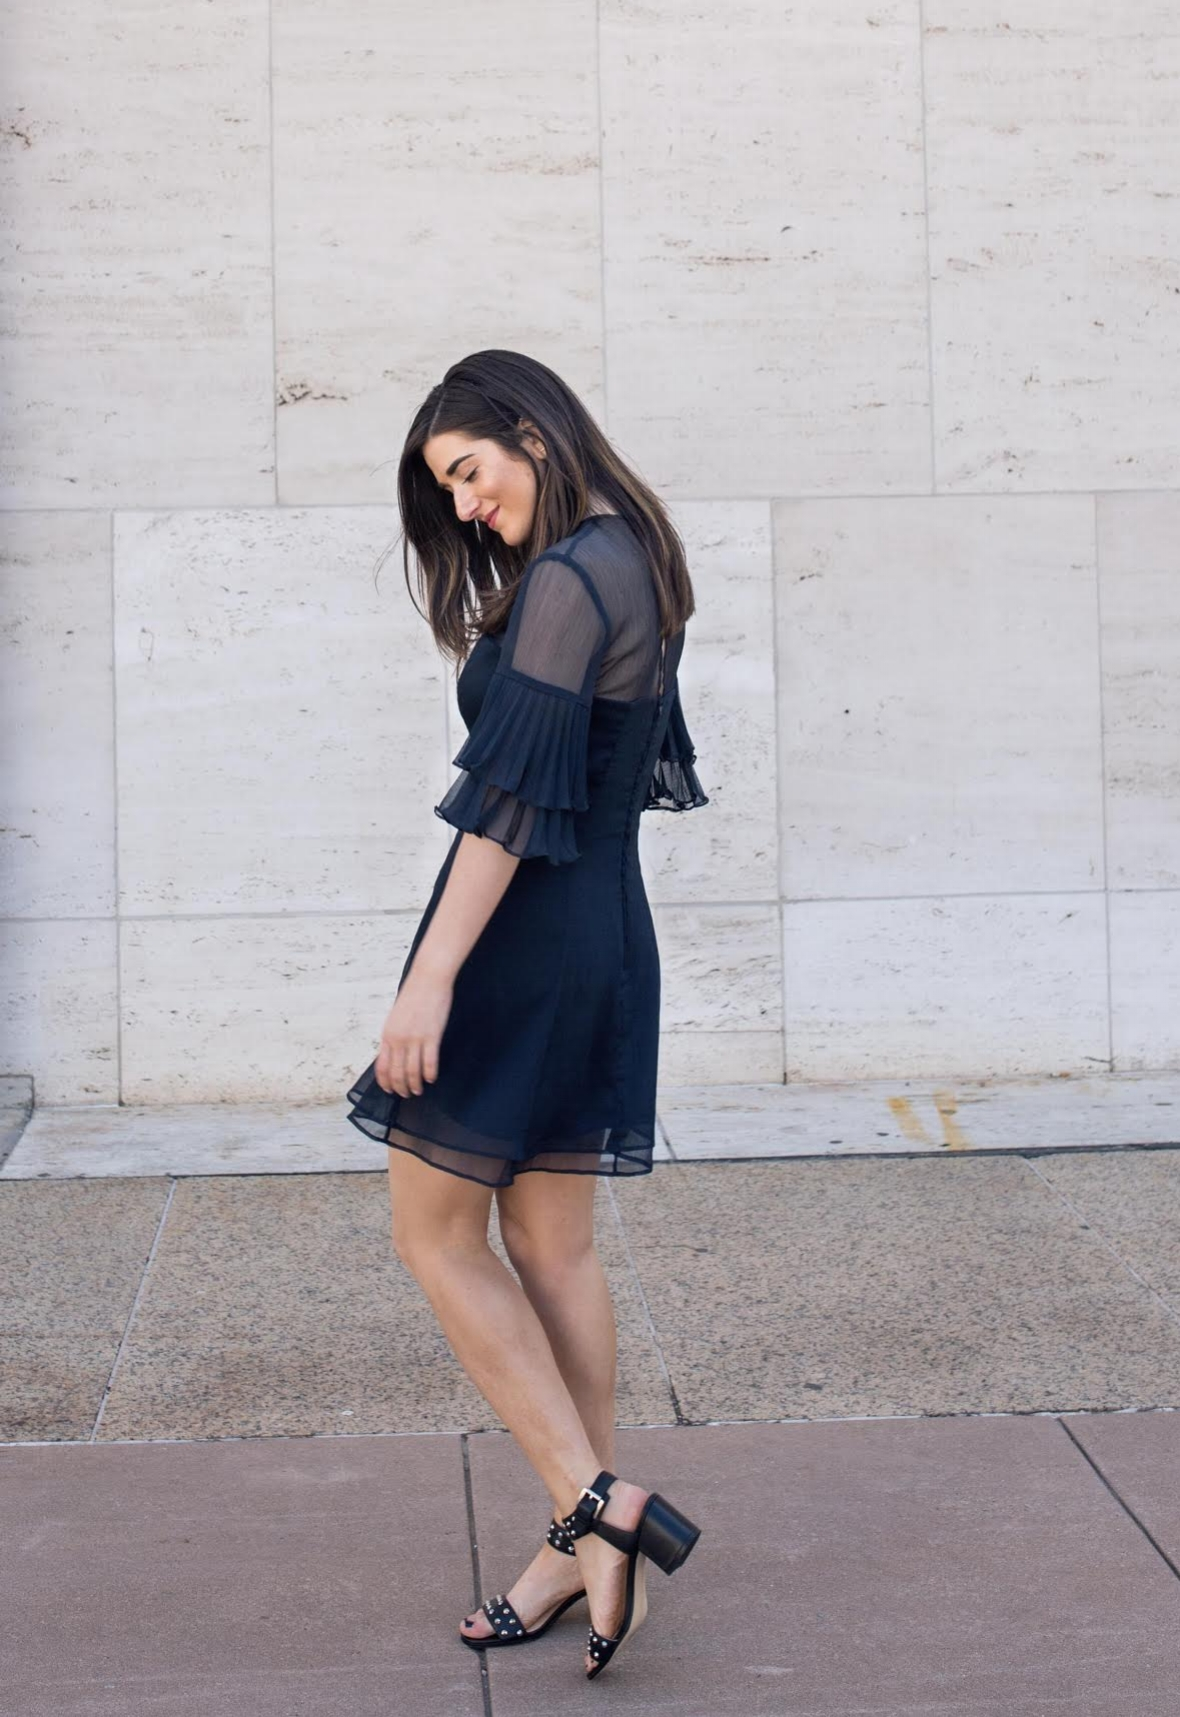 Lulus Ruffle Sleeve Dress The Best And Worst Fads of 2017 Esther Santer Fashion Blog NYC Street Style Blogger Outfit OOTD Trendy Pretty Feminine Navy Elegant Fancy Summer Look Sheer Black Studded Sandals Straight Photoshoot Hair Beauty Girl Women Shop.jpg